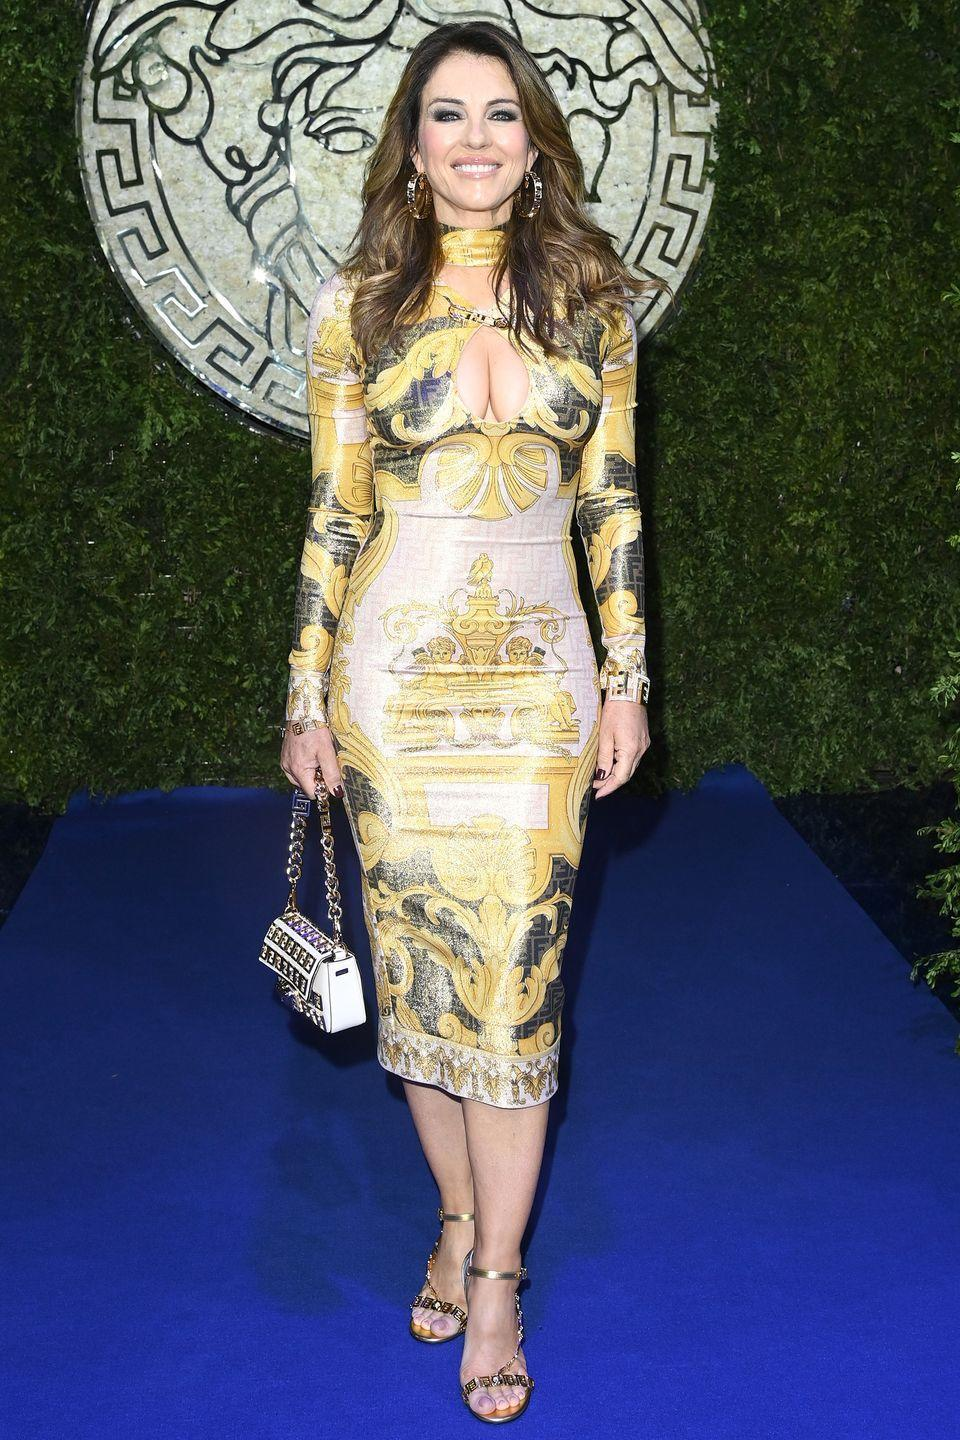 <p><strong>26 September</strong></p><p>Elizabeth Hurley wore a dress showcasing the iconic Versace print.</p>